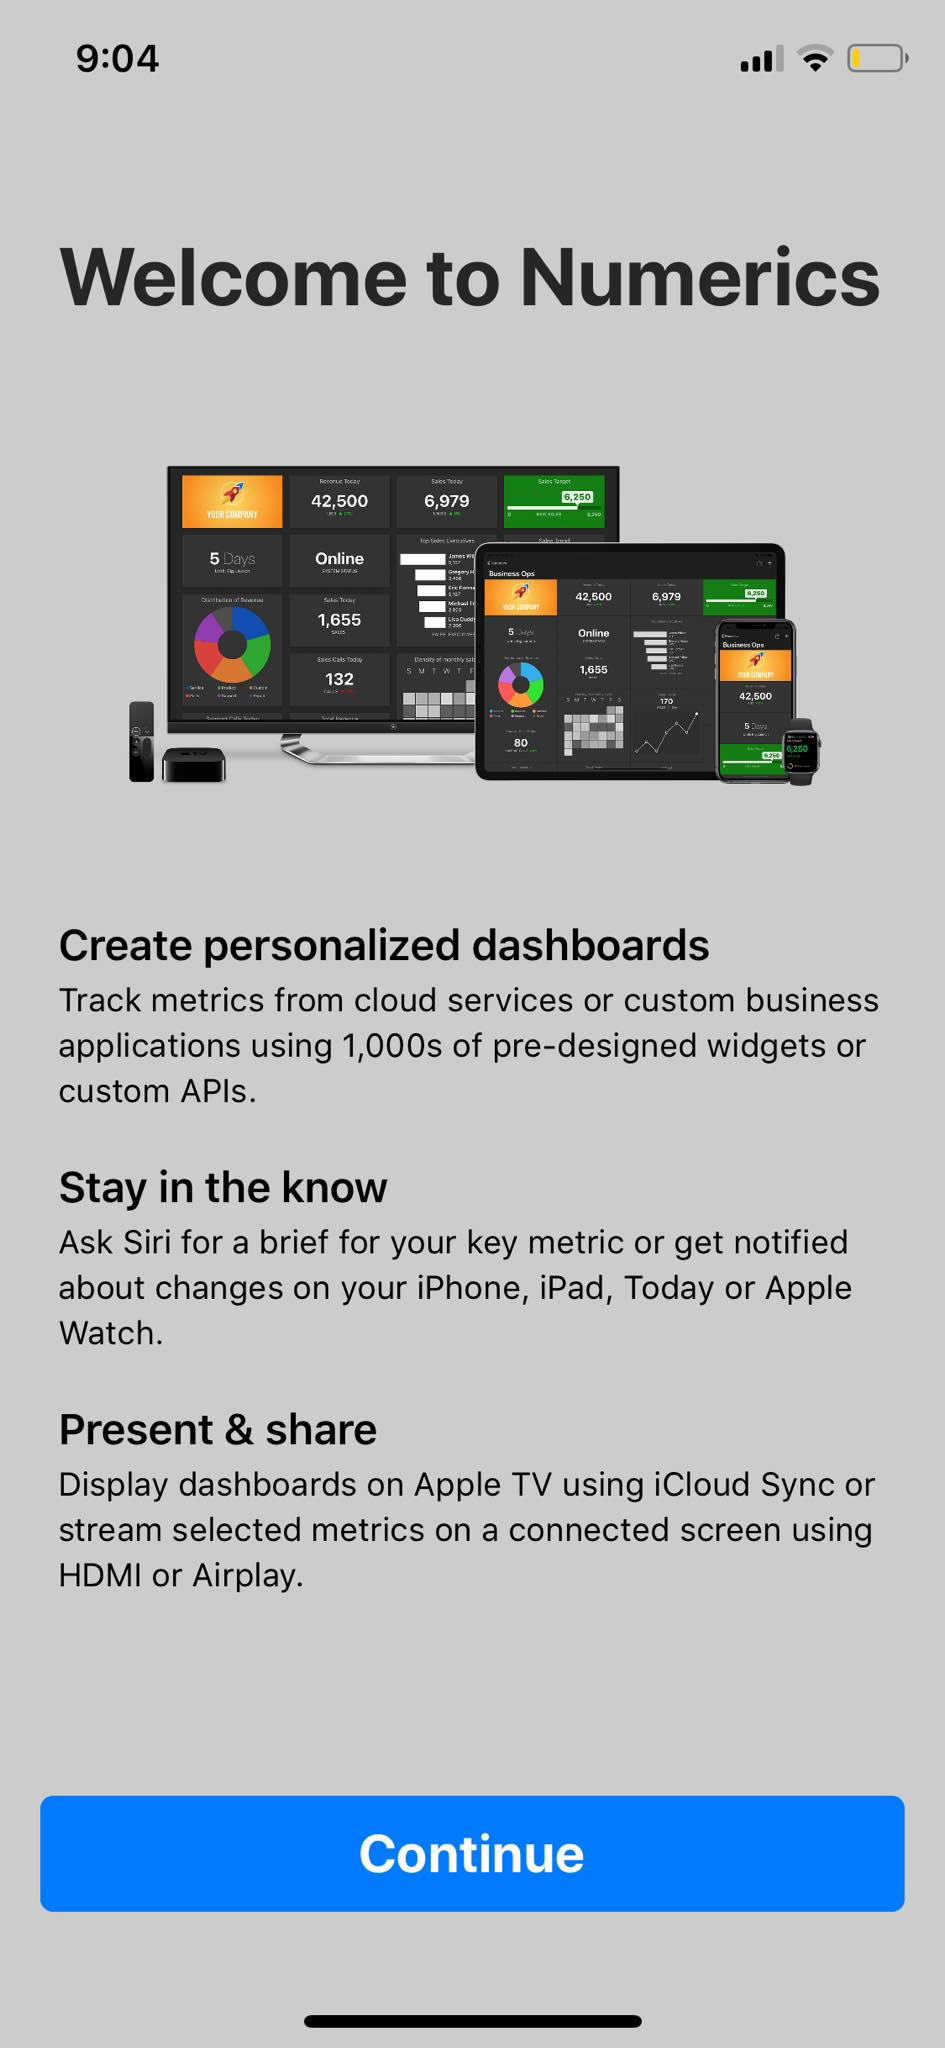 Welcome on iOS by Numerics